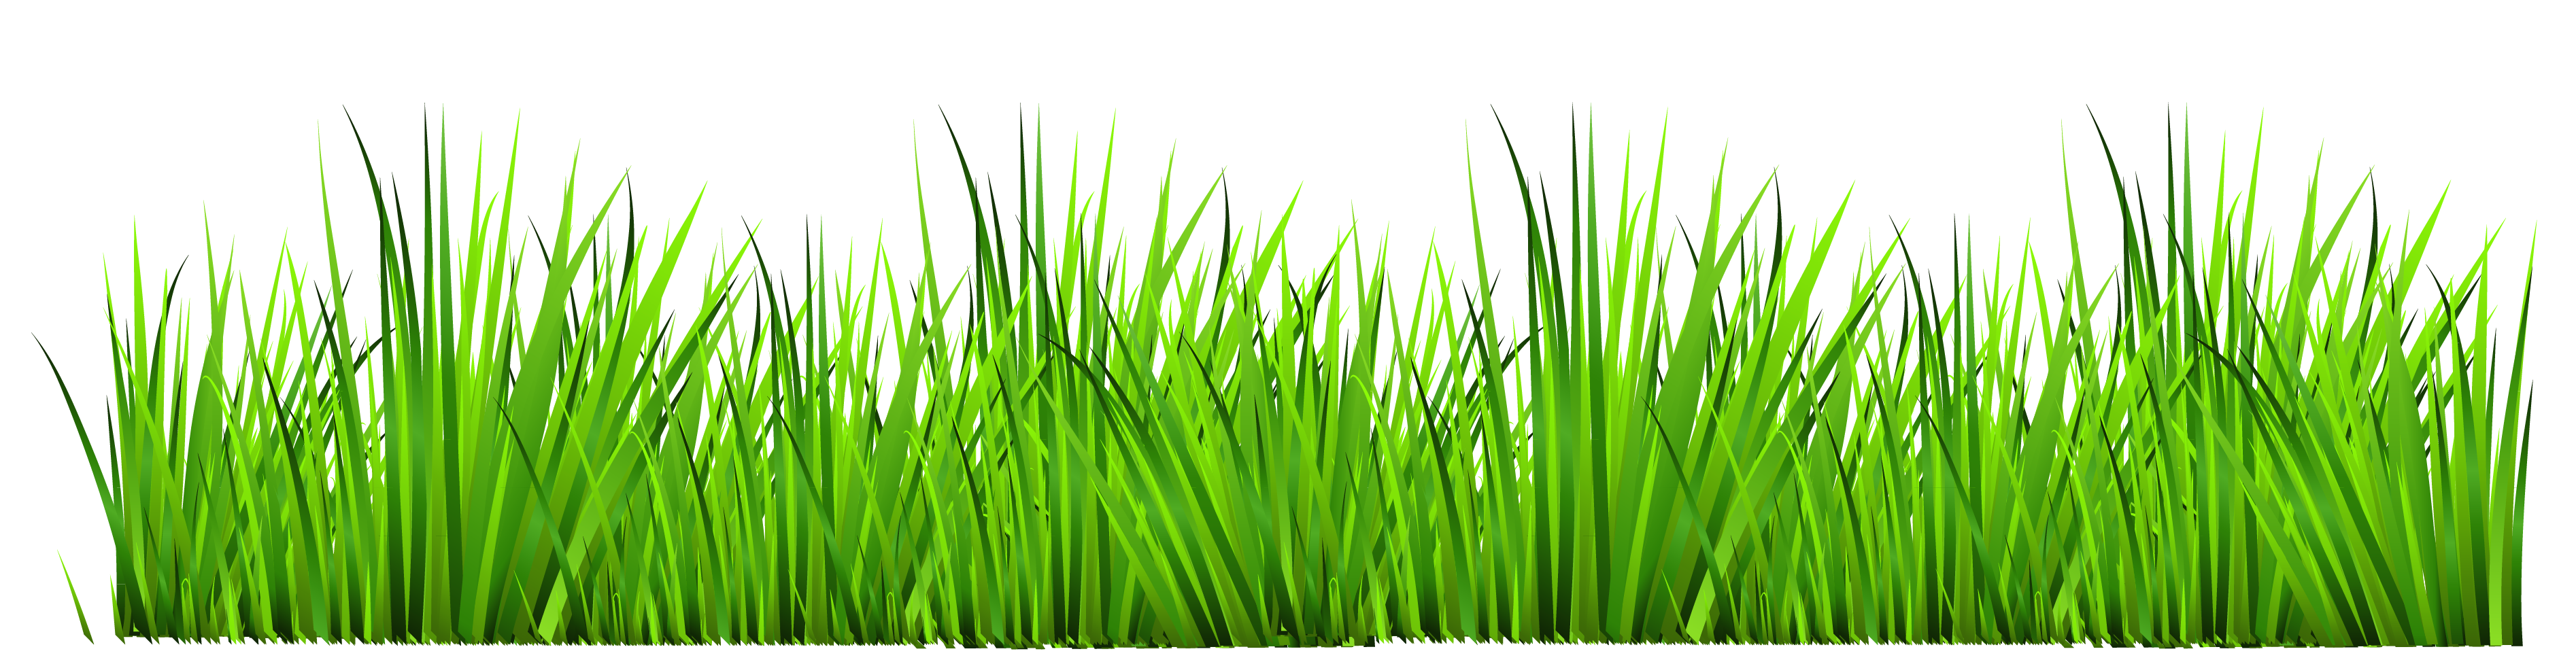 Poppy clipart green grass flower. Transparent free clip art